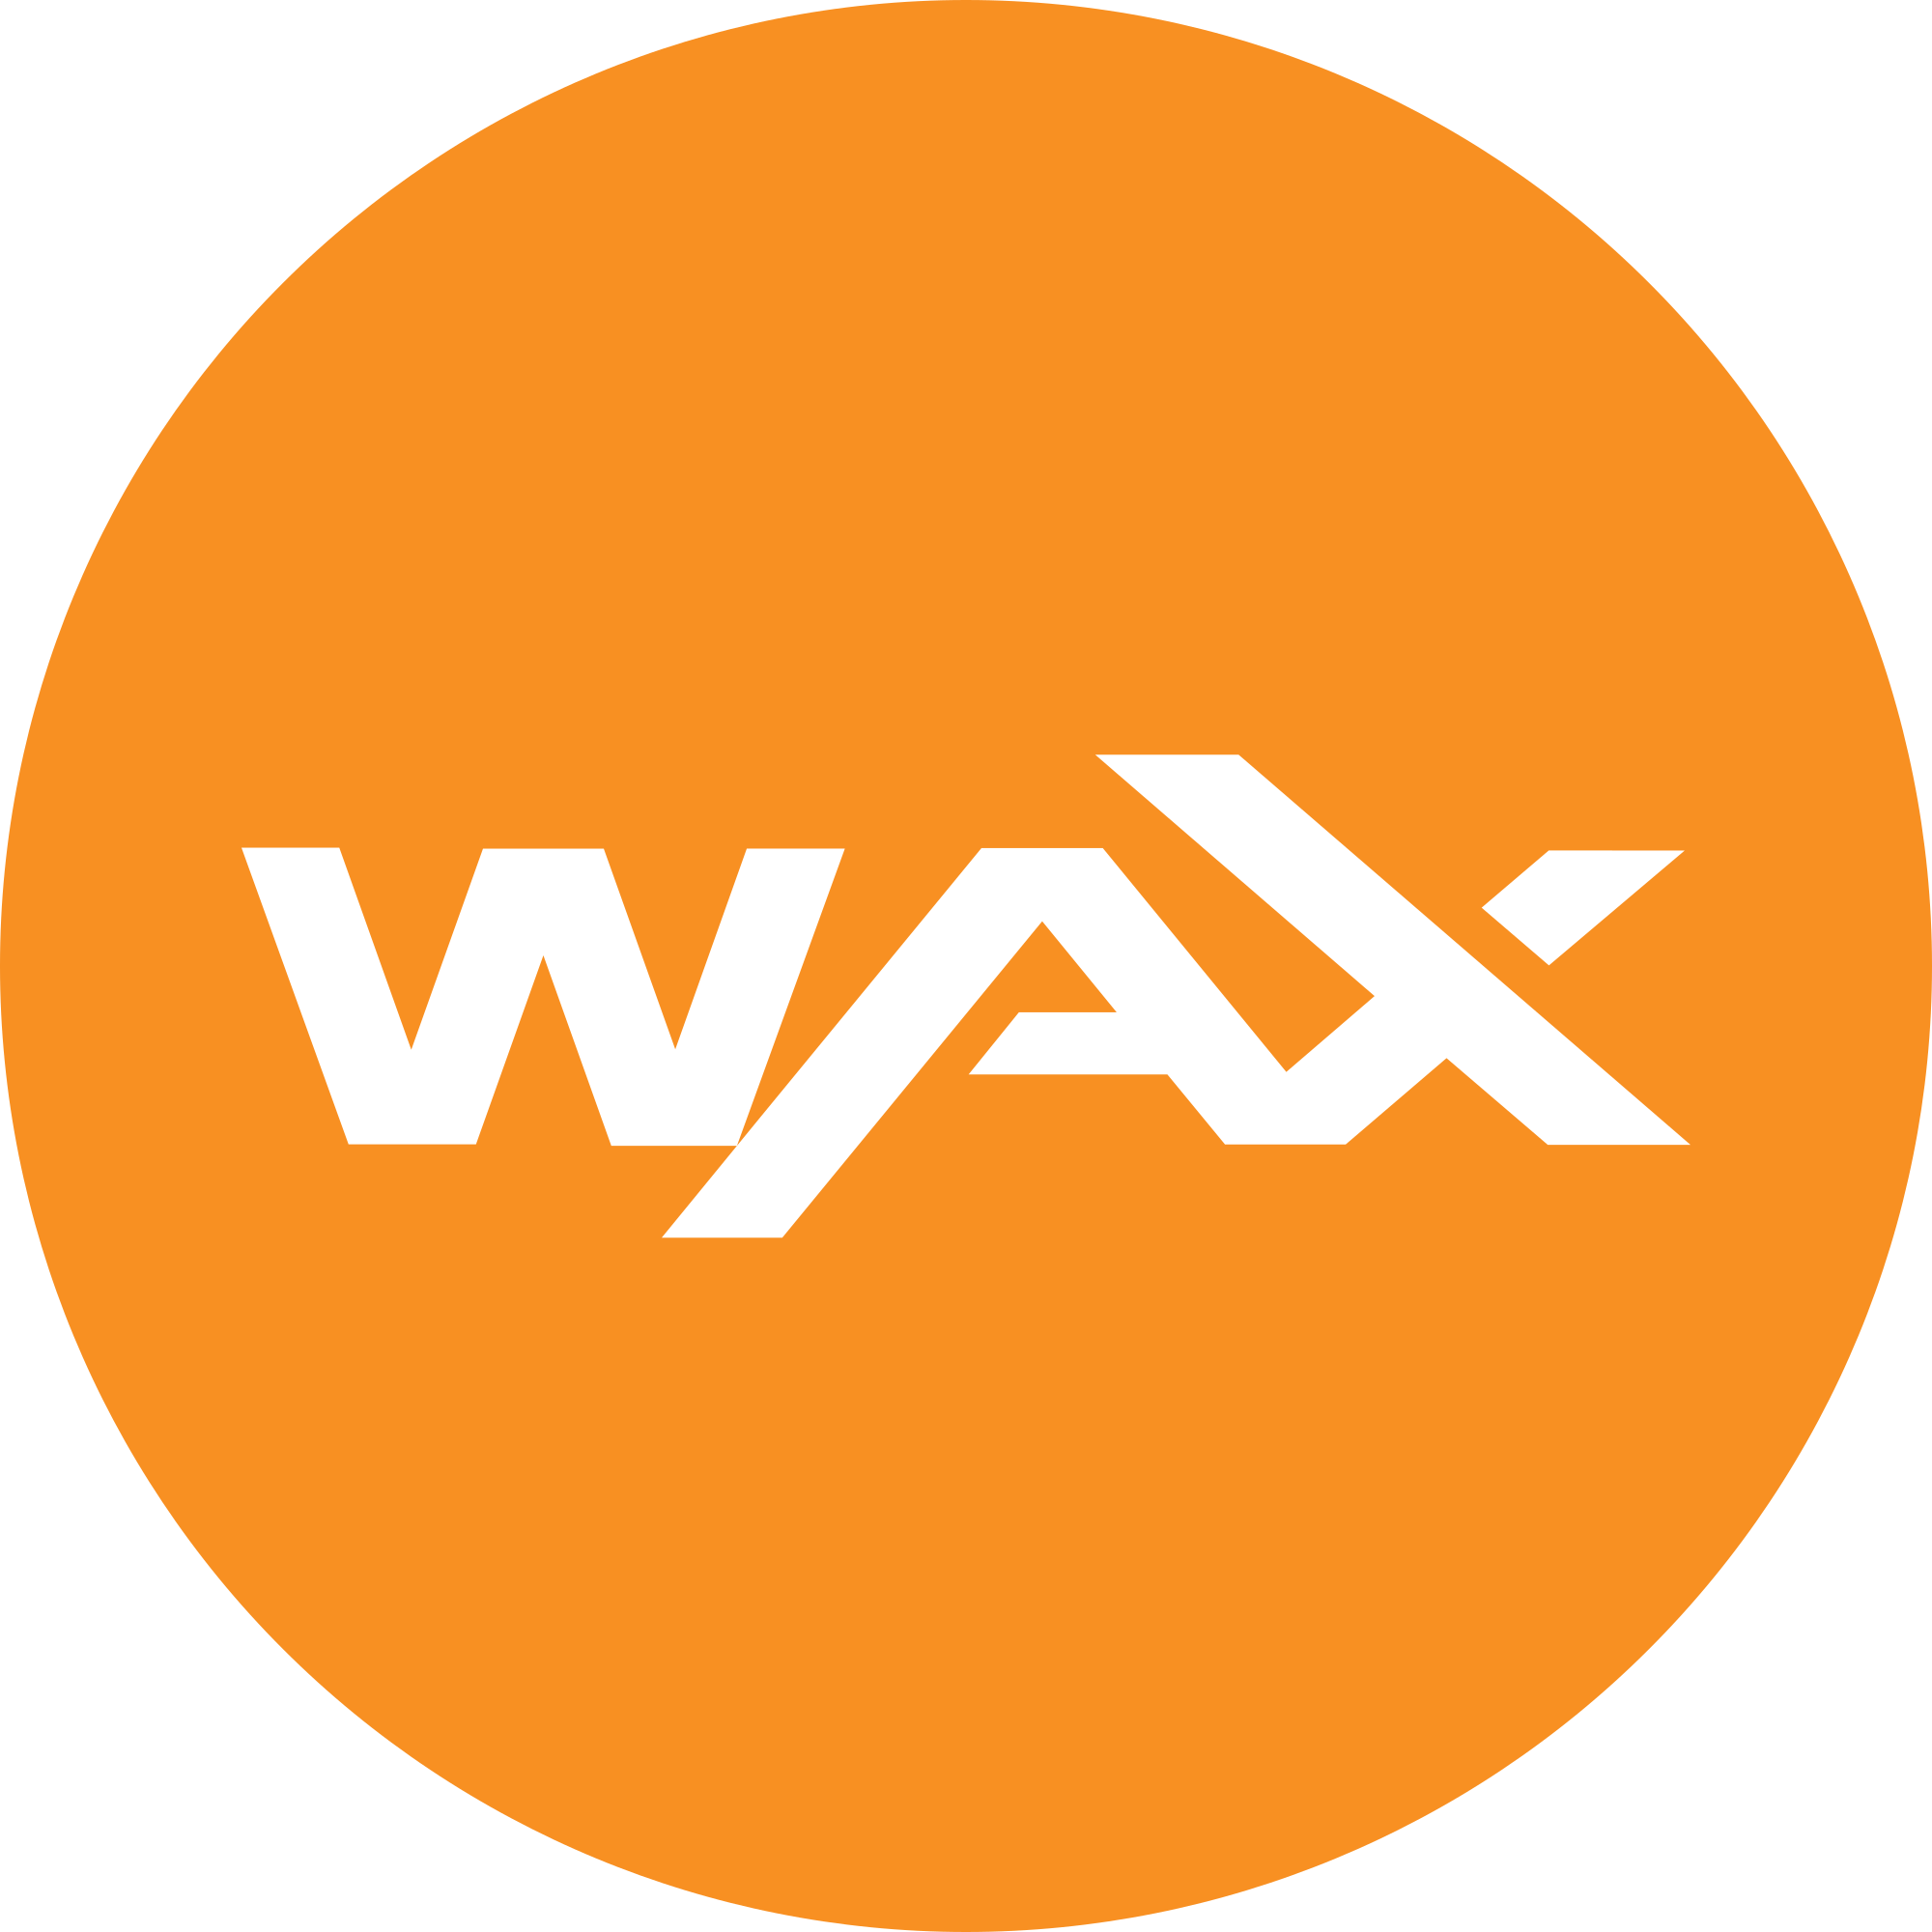 WAX (WAXP) Logo .SVG and .PNG Files Download